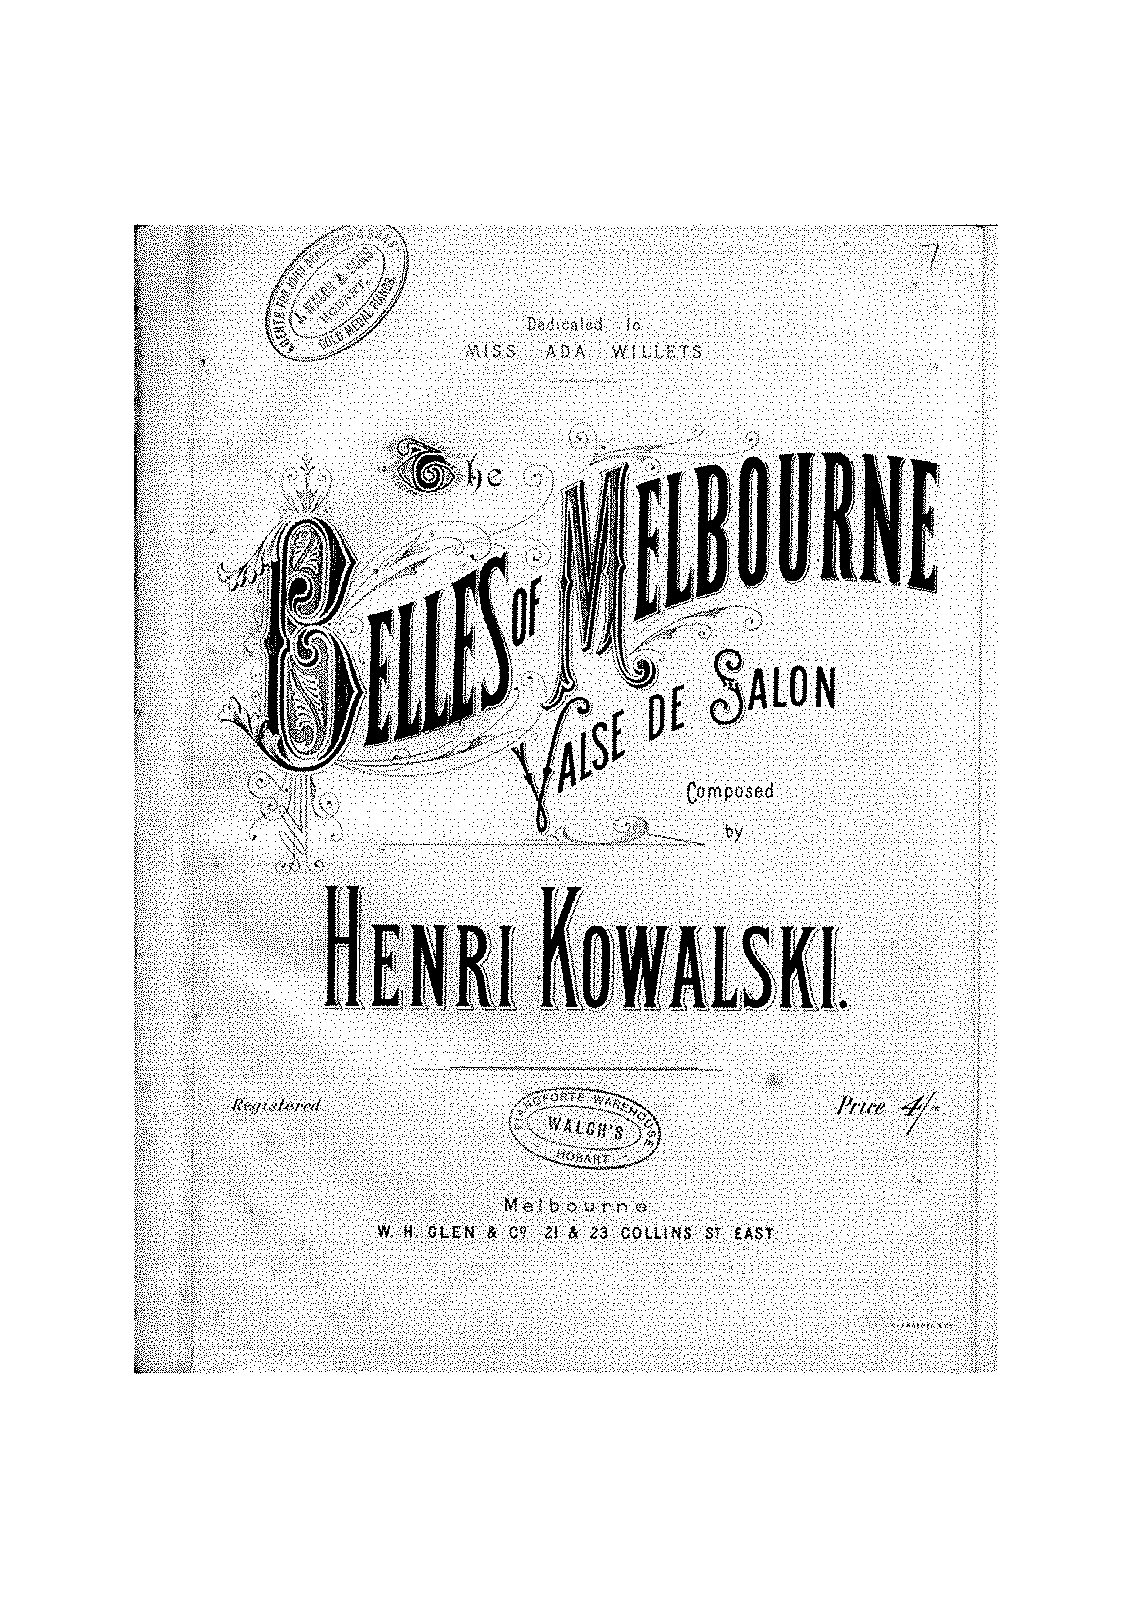 Kowalski - Op.misc - Belles of Melbourne, Valse de Salon.pdf